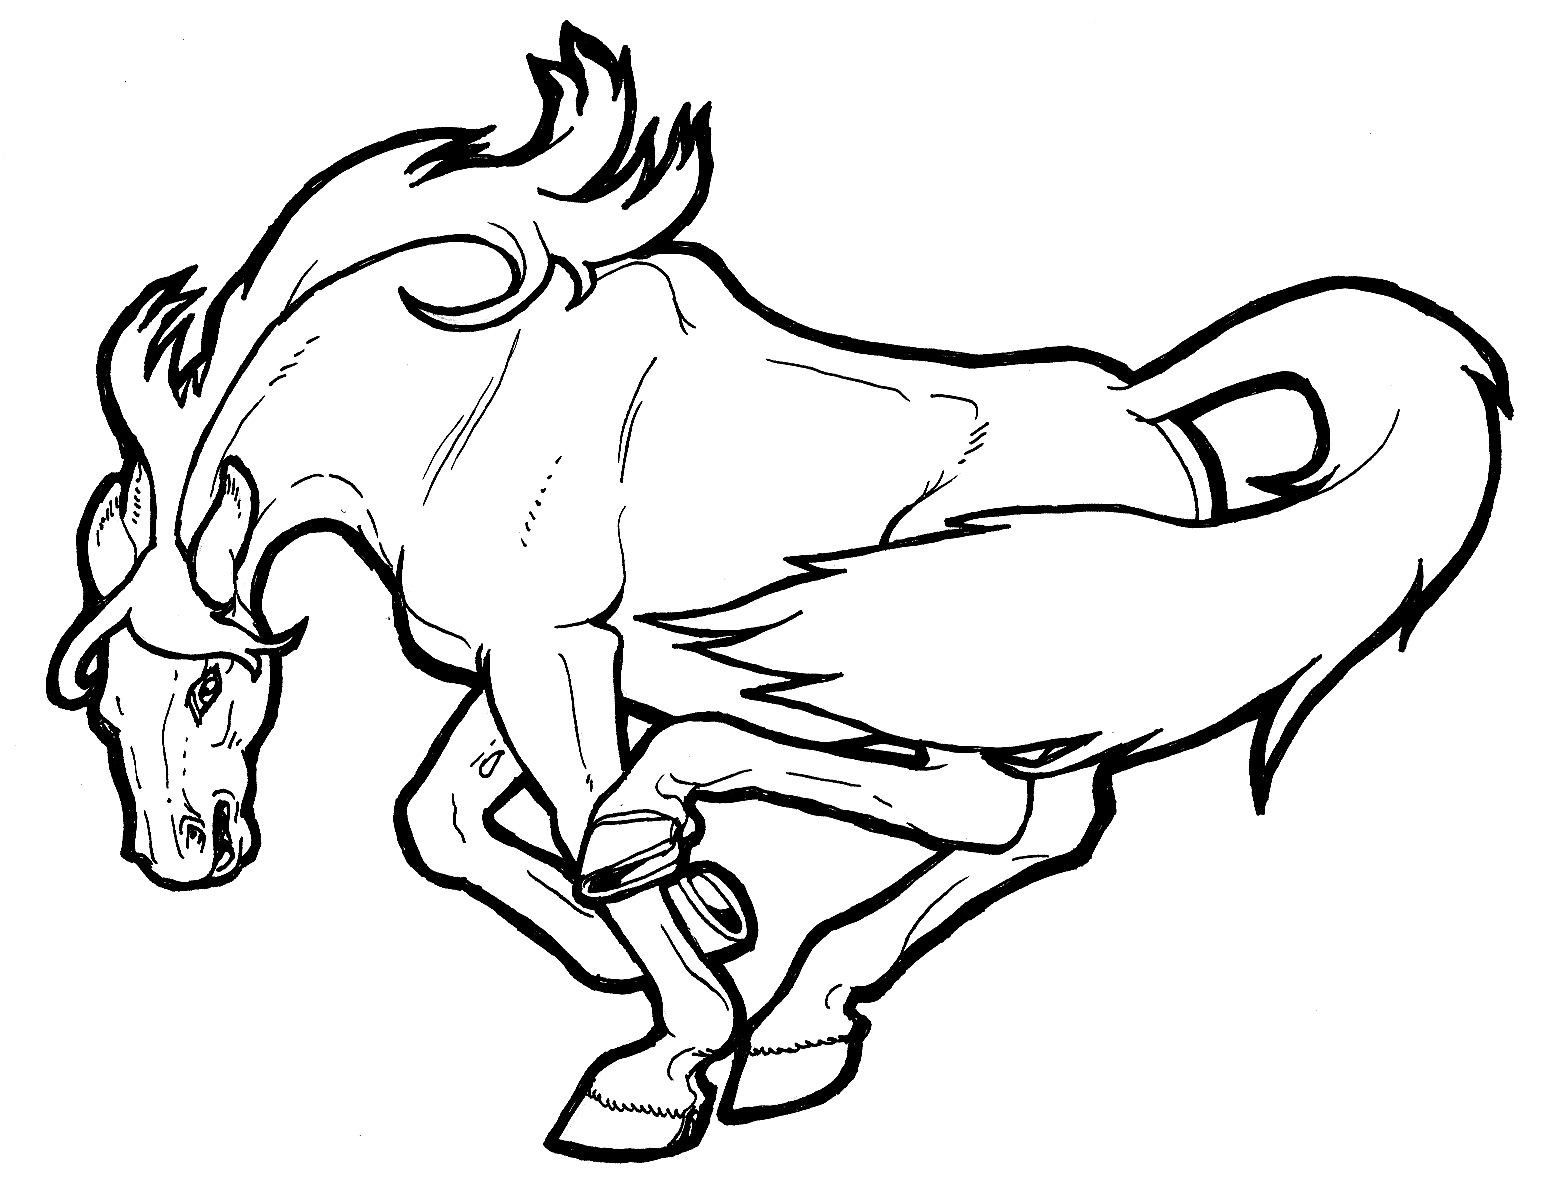 horse coloring sheets realistic horse coloring pages to download and print for free sheets coloring horse 1 1